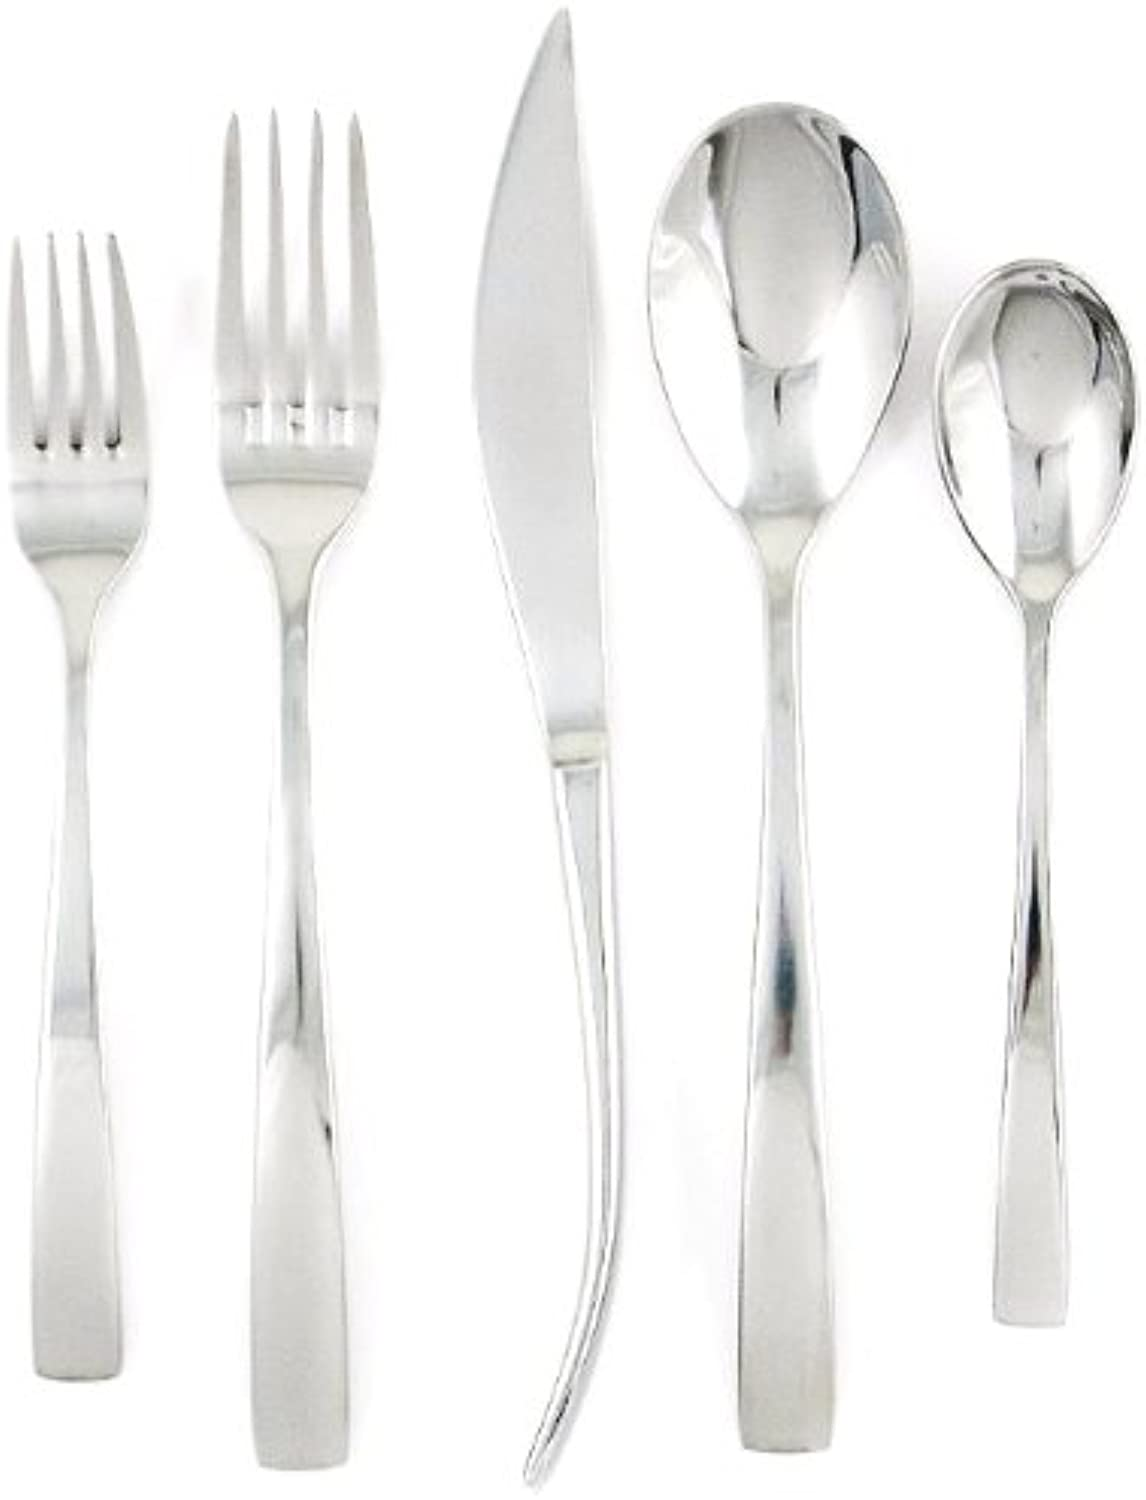 Ginkgo International President 42-Piece Stainless Steel Flatware Place Setting, Service for 8 Plus 2-Piece Hostess Set